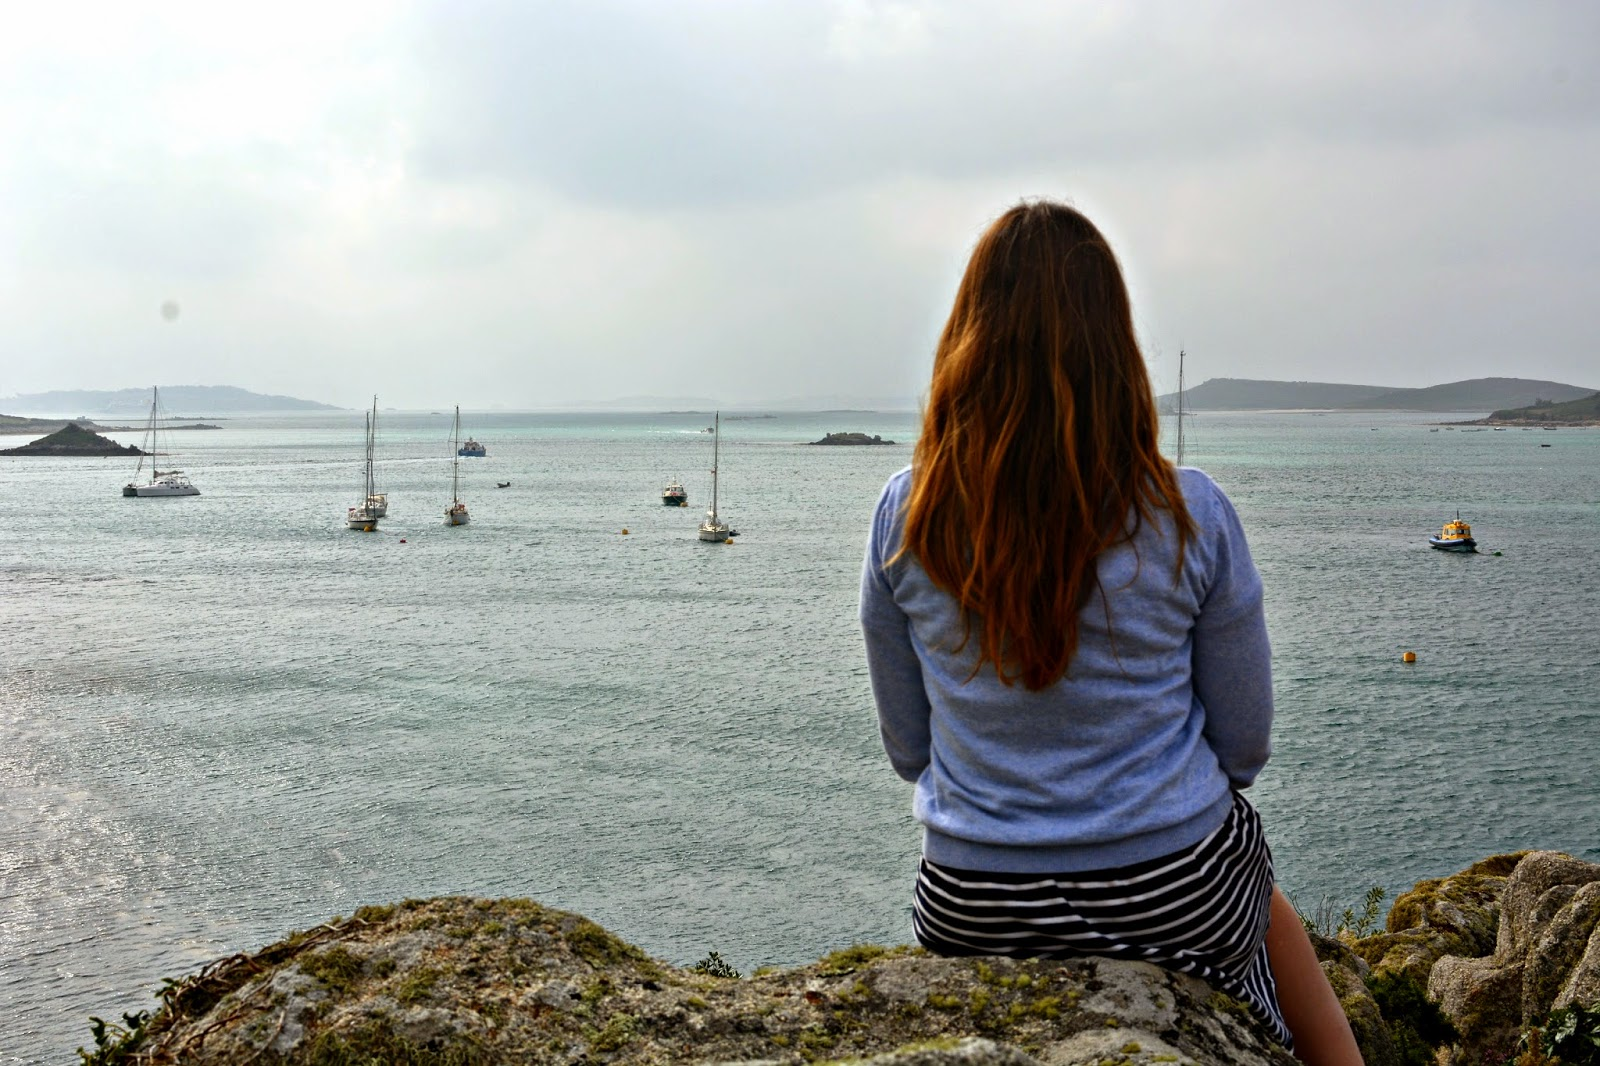 Looking out over Tresco and Bryher sound with boats in distance